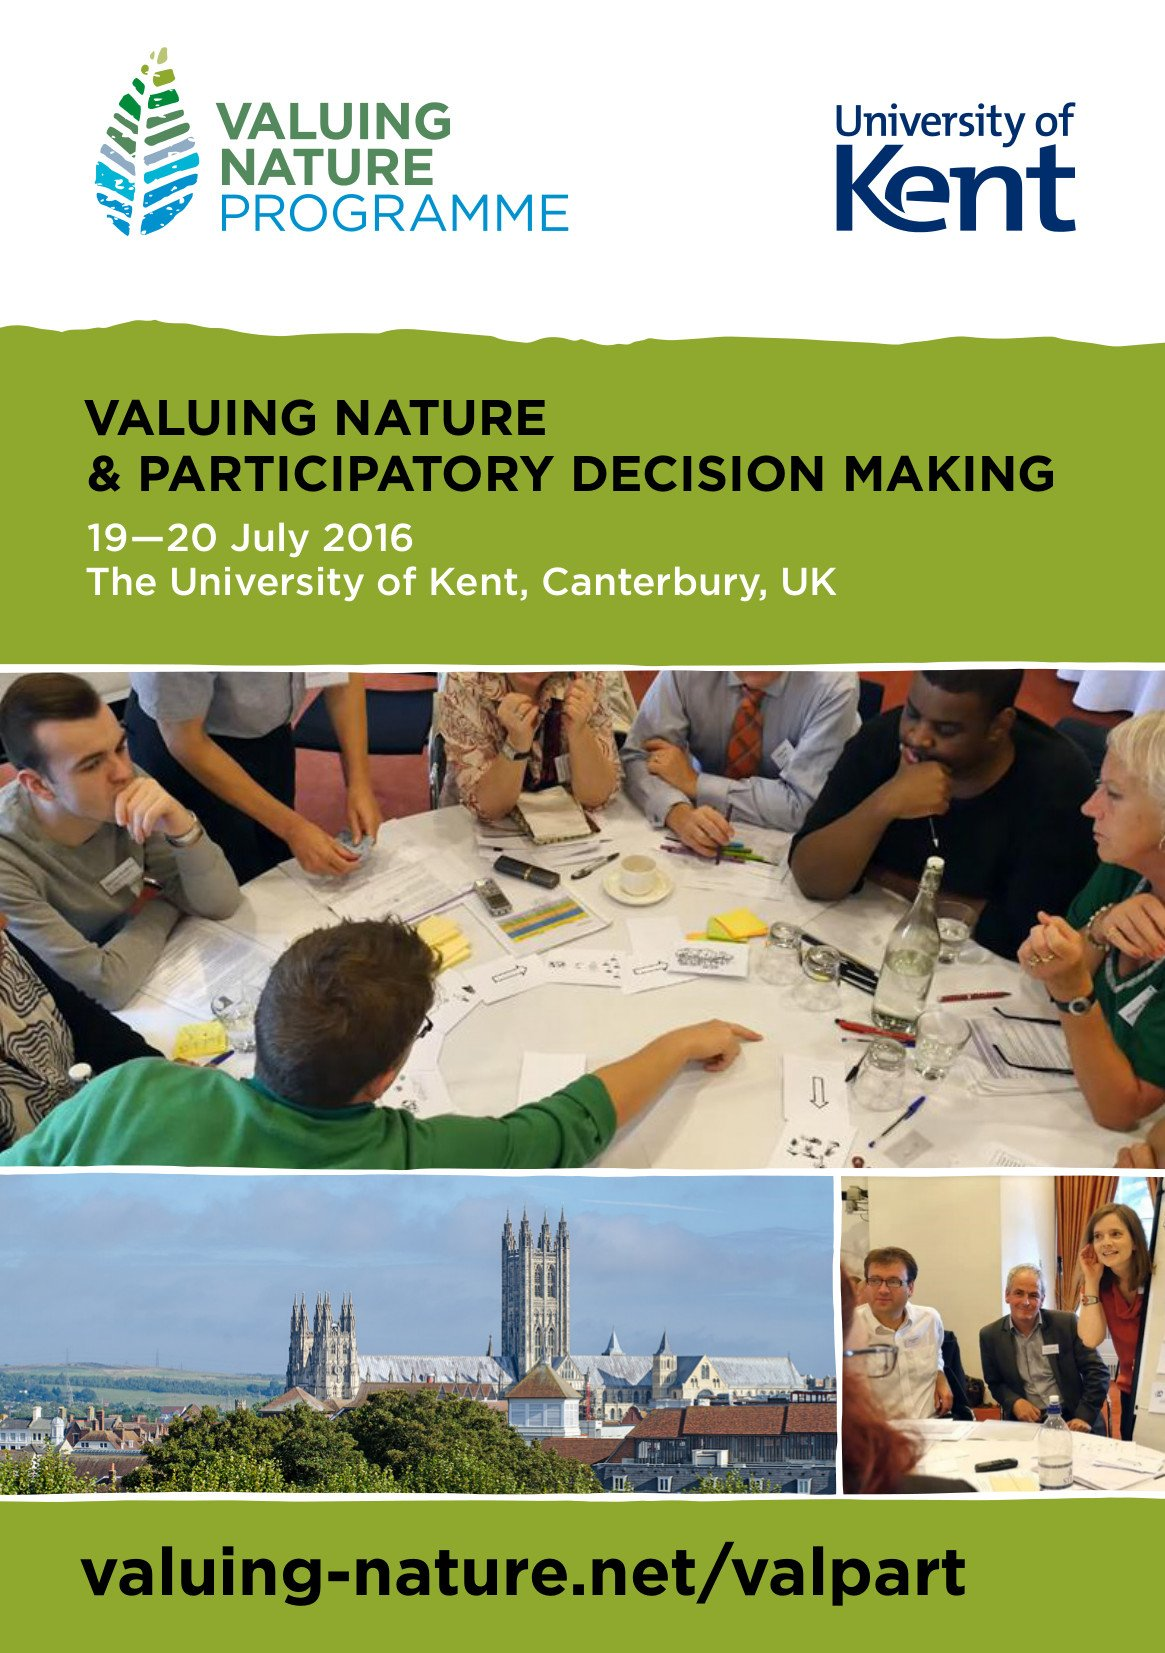 It's today! Valuing Nature & Participatory Decision Making conf    @UniKent #ValPart16 https://t.co/83w11ntBa4 https://t.co/1iMUhPObJq